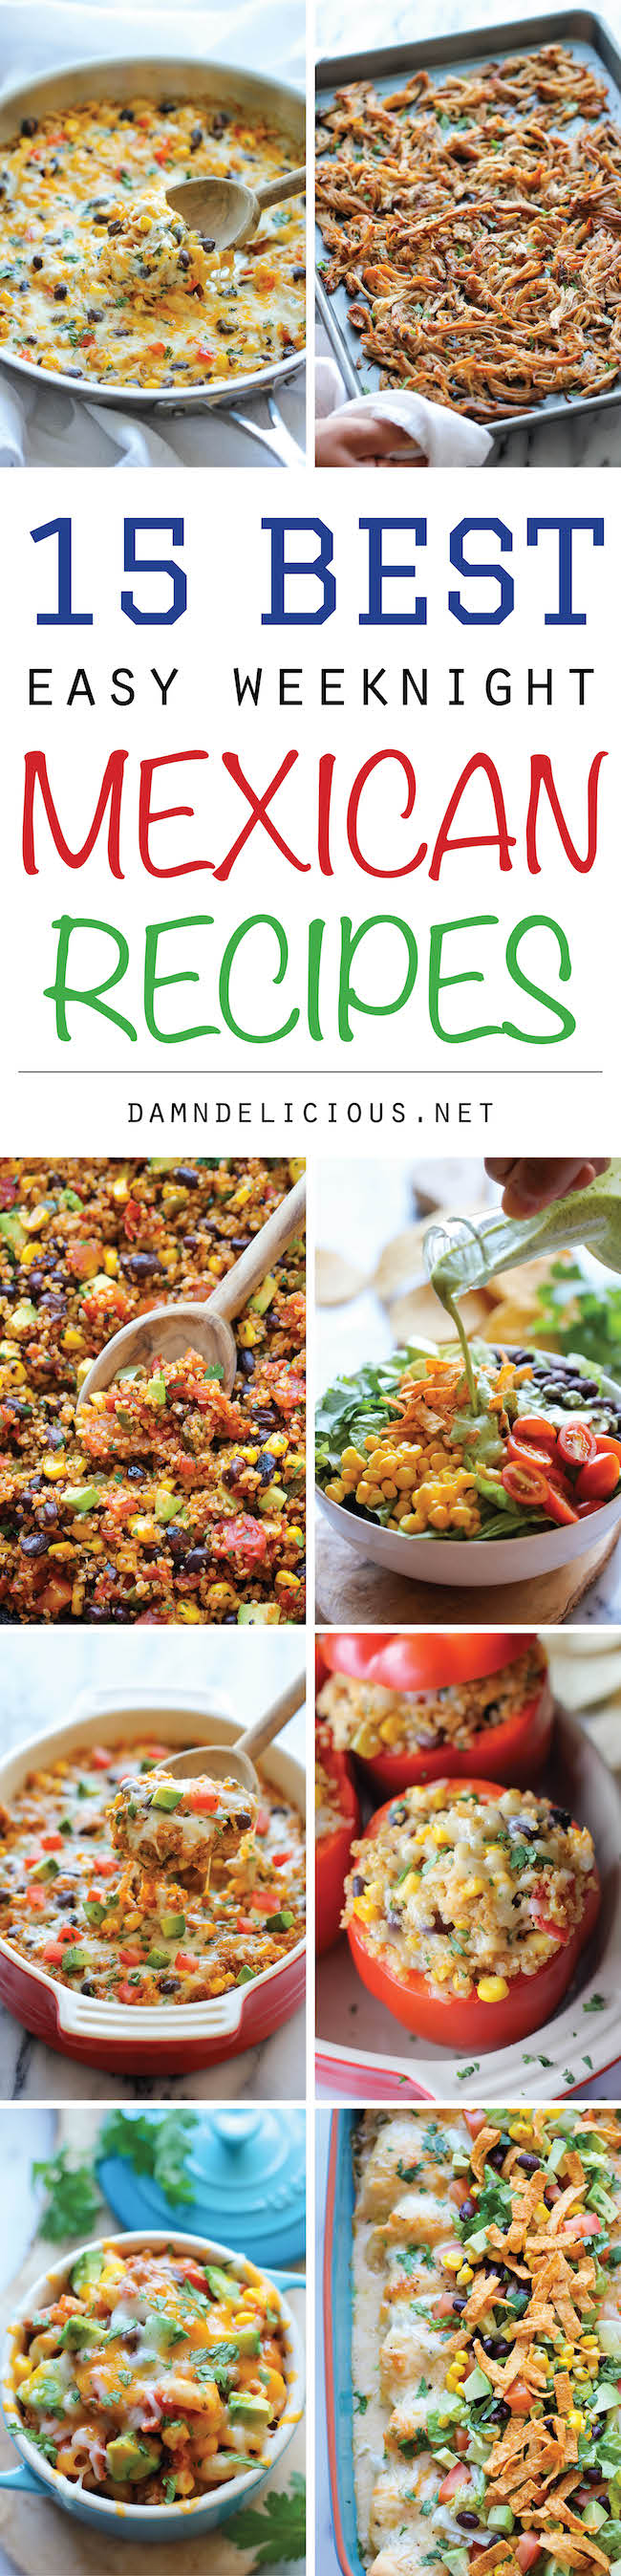 15 best easy weeknight mexican recipes damn delicious 15 best easy weeknight mexican recipes the best quick and easy mexican weeknight forumfinder Choice Image